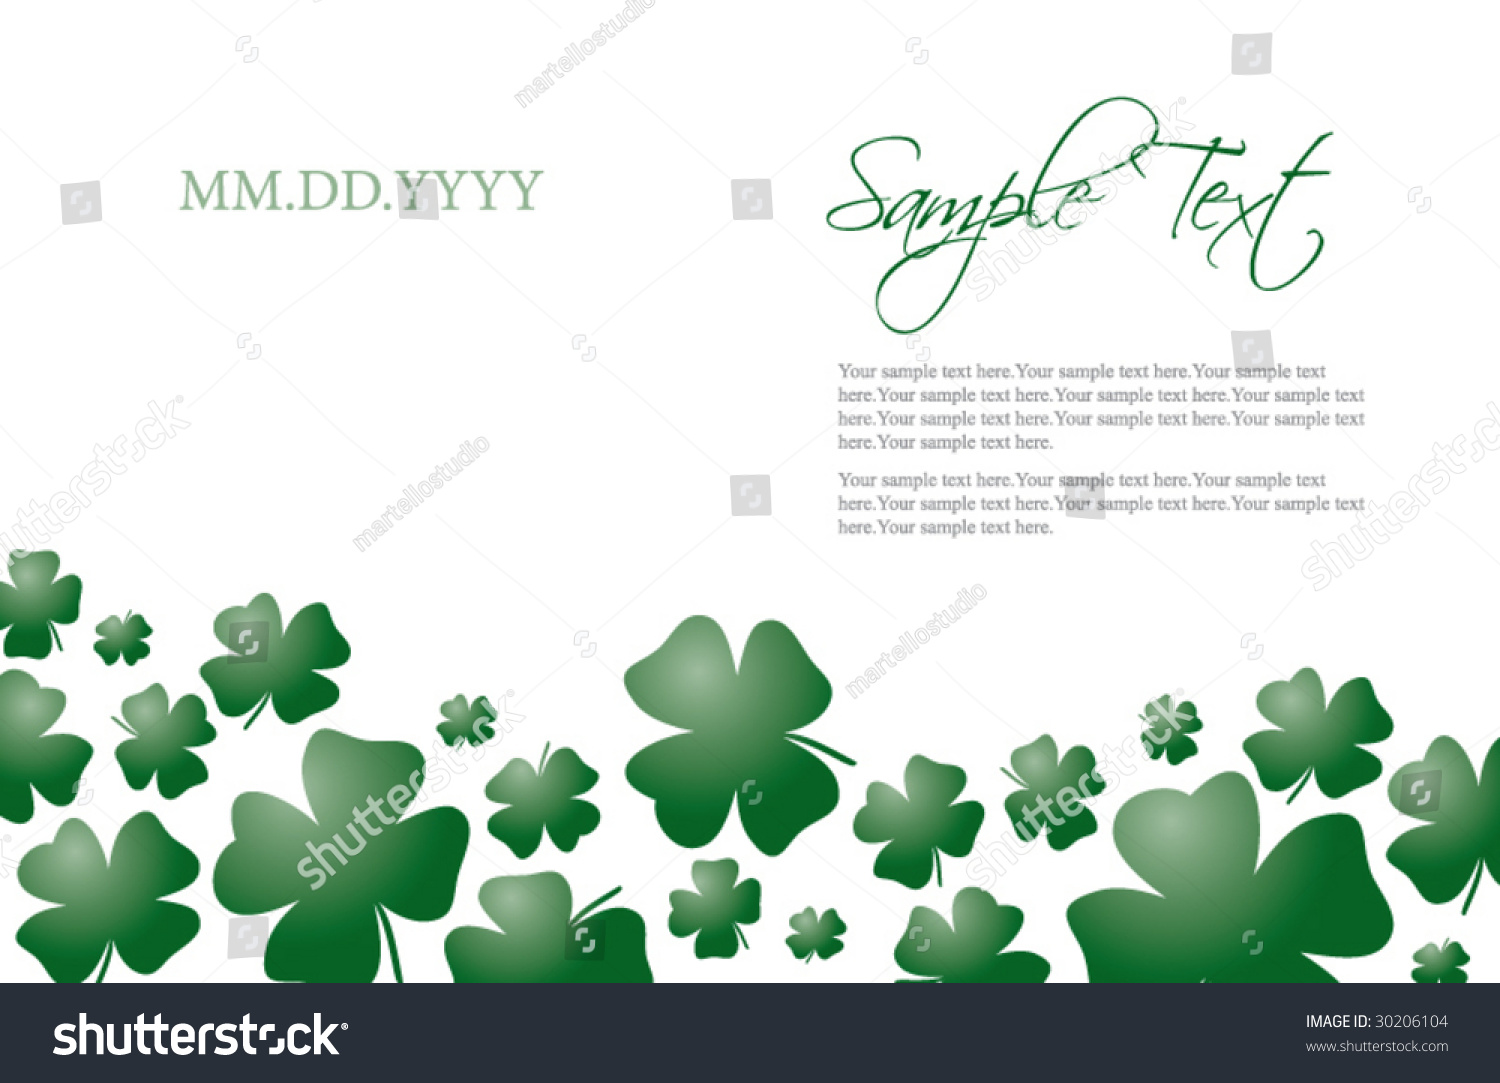 Cool 1 Inch Circle Template Huge 1 Round Label Template Regular 1.5 Inch Hexagon Template 10 Off Coupon Template Young 12 Team Schedule Template Green15 Year Old Resume Template Four Leaf Clover Card Invitation Template Stock Vector 30206104 ..